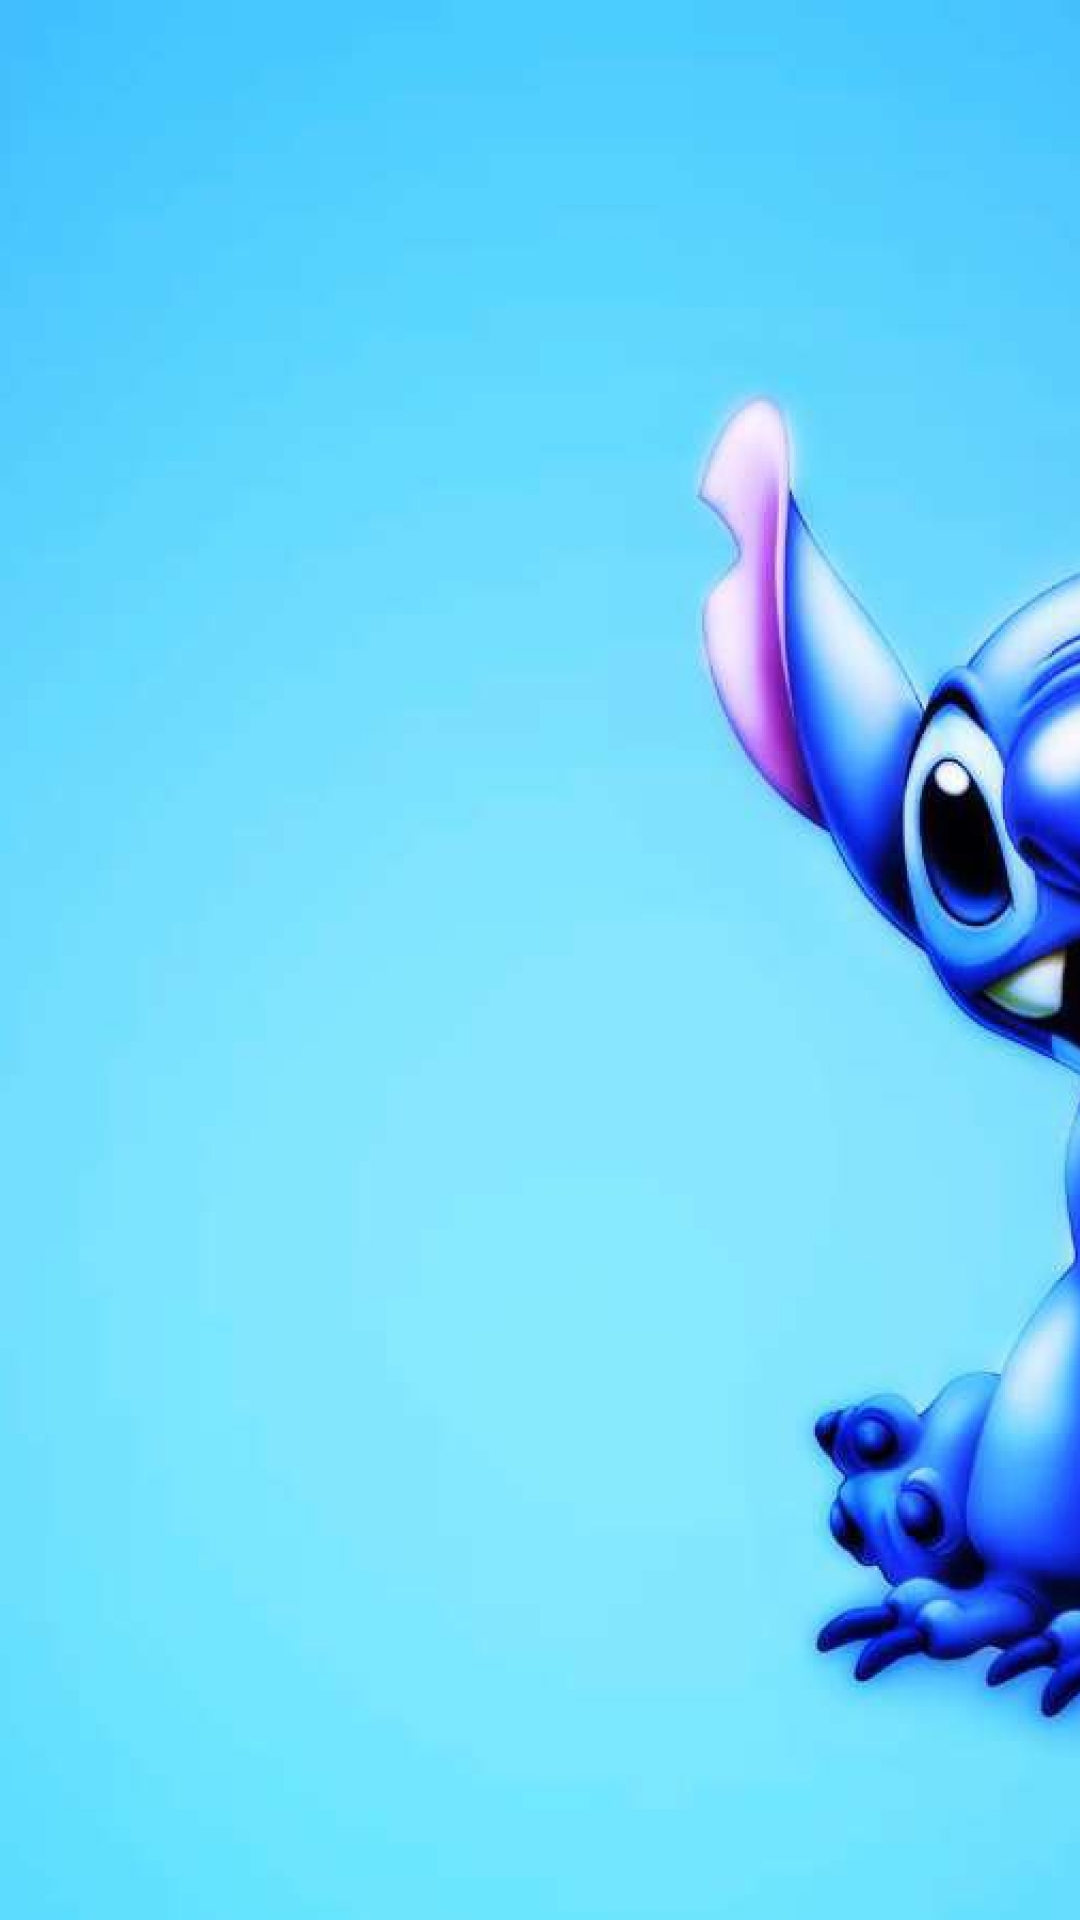 Stitch Wallpaper Android Cute Stitch Wallpaper For